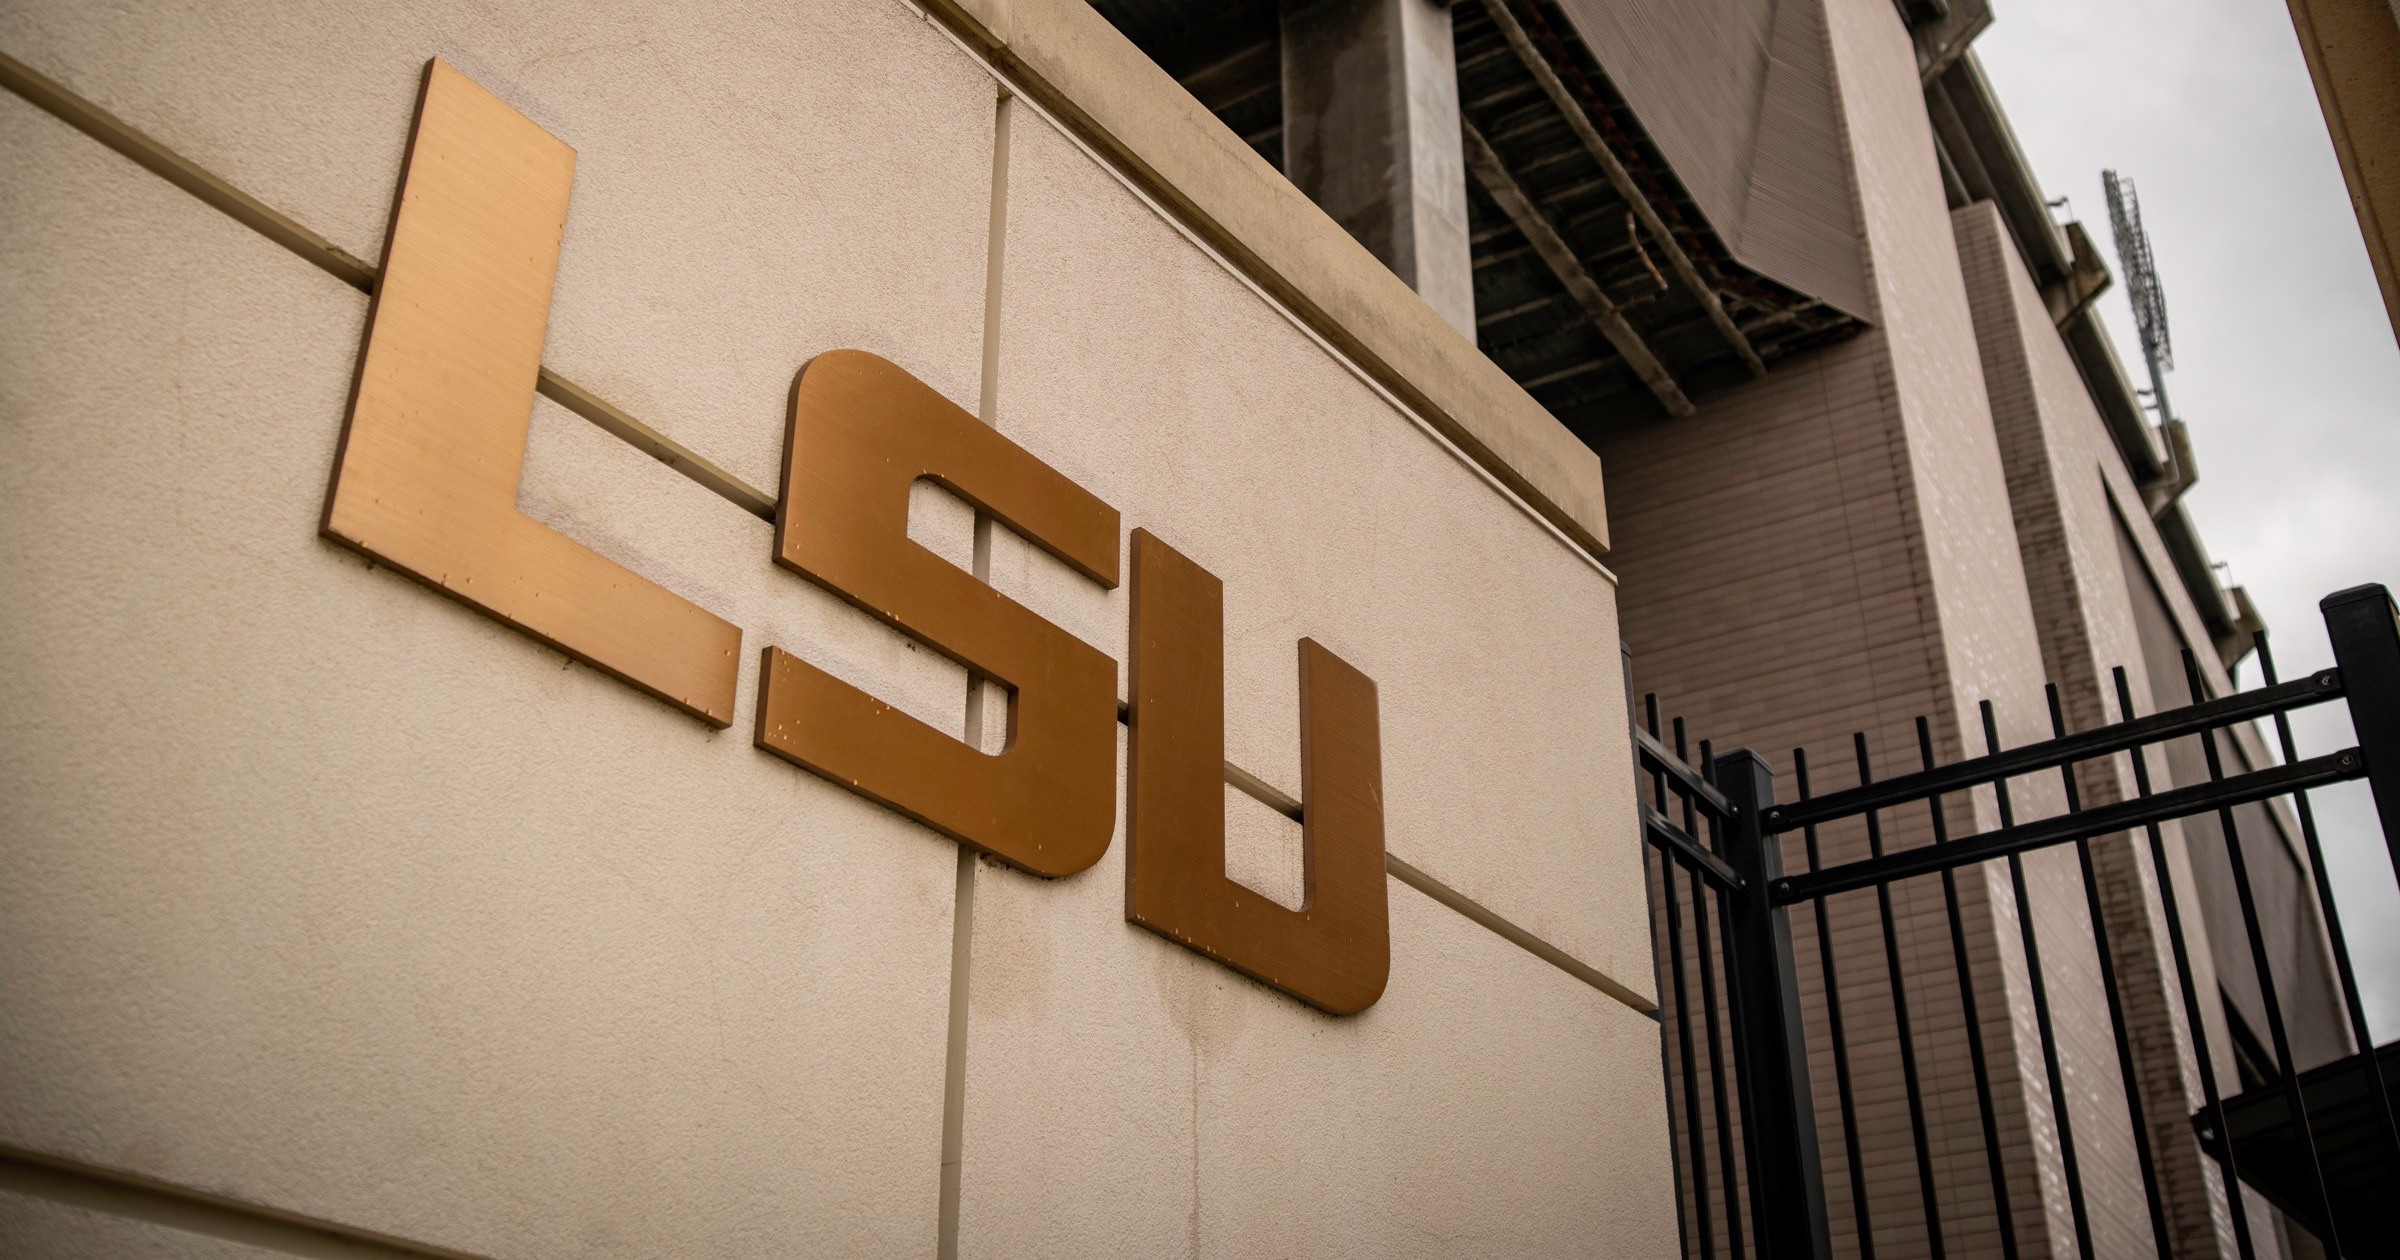 Golden letters that spell out LSU at Louisiana State University.